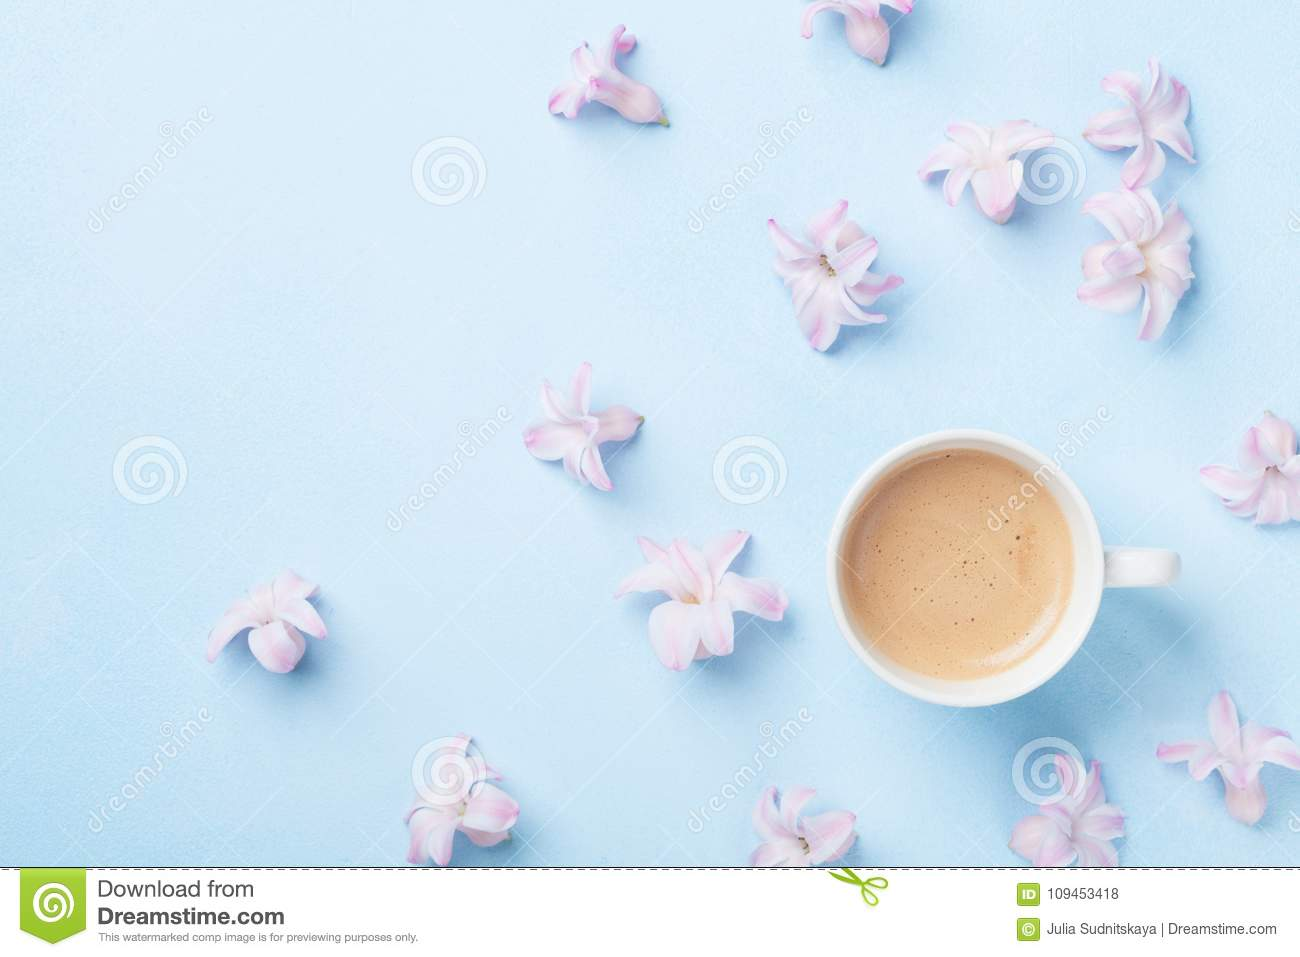 Creative composition with morning coffee and pink flowers on blue pastel background top view. Flat lay style.